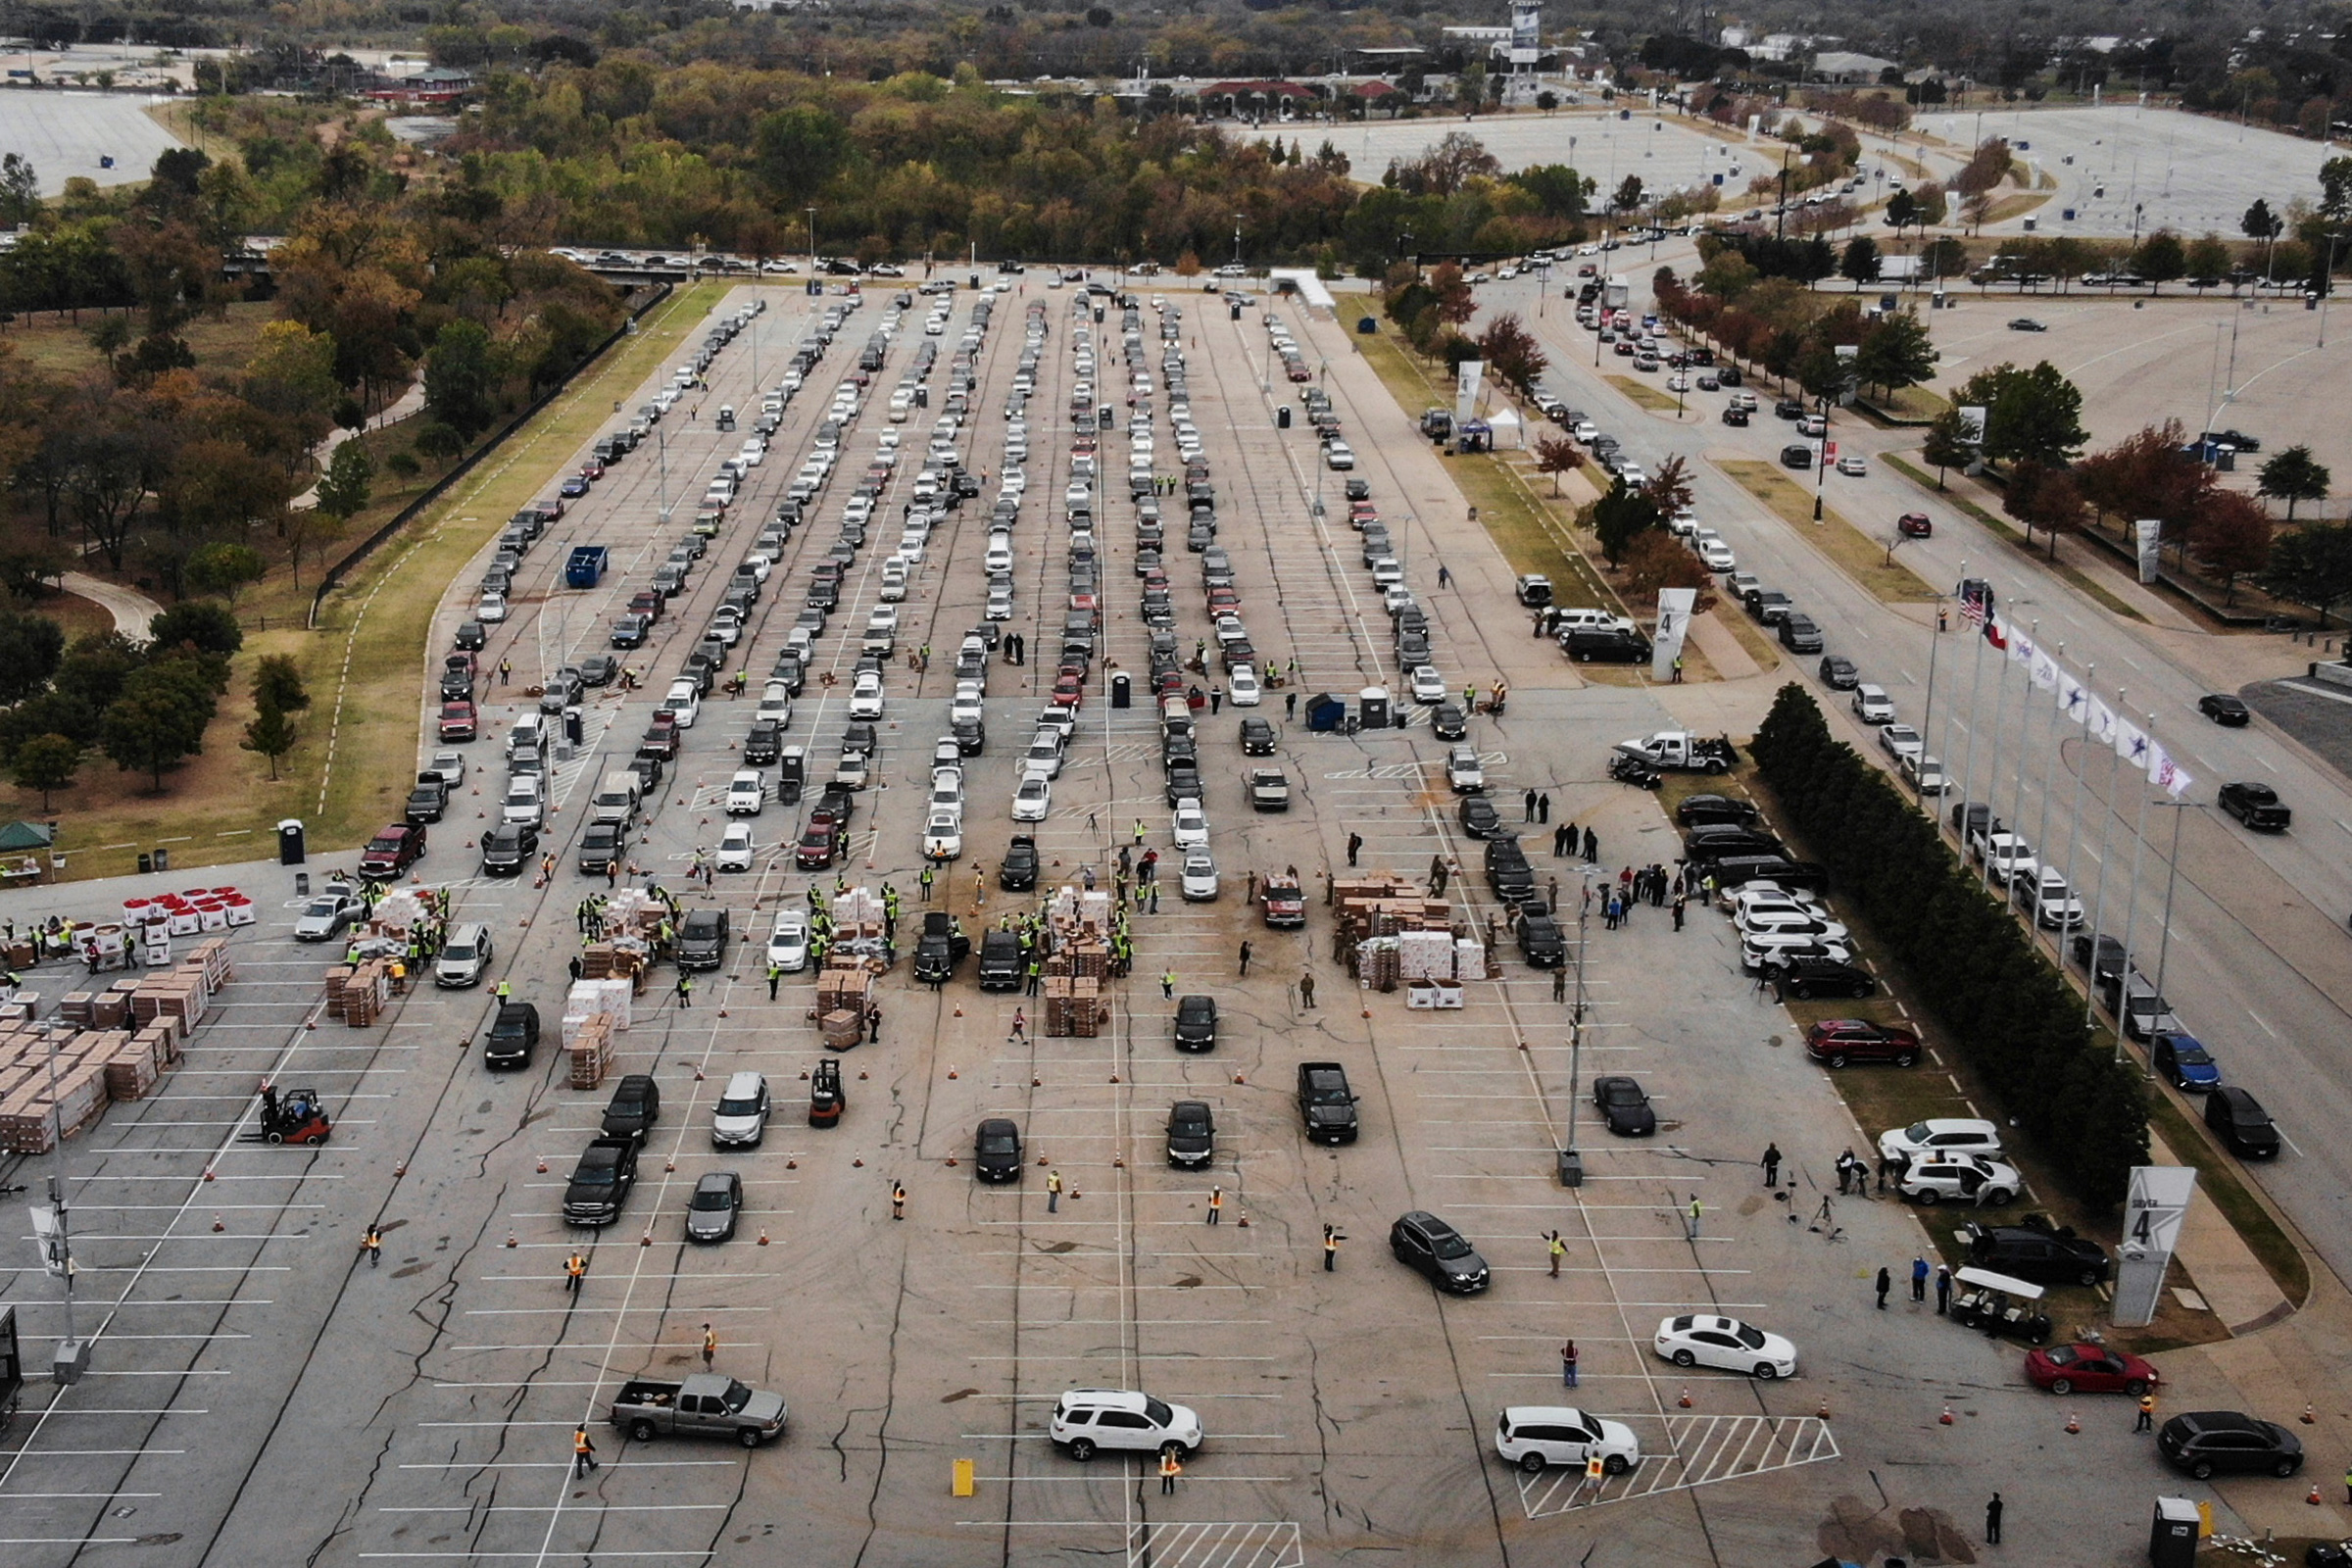 People line up in their cars to receive Thanksgiving meal boxes, which include a turkey and pantry items, from the Tarrant Area Food Bank in Arlington, Texas, on Nov. 20.